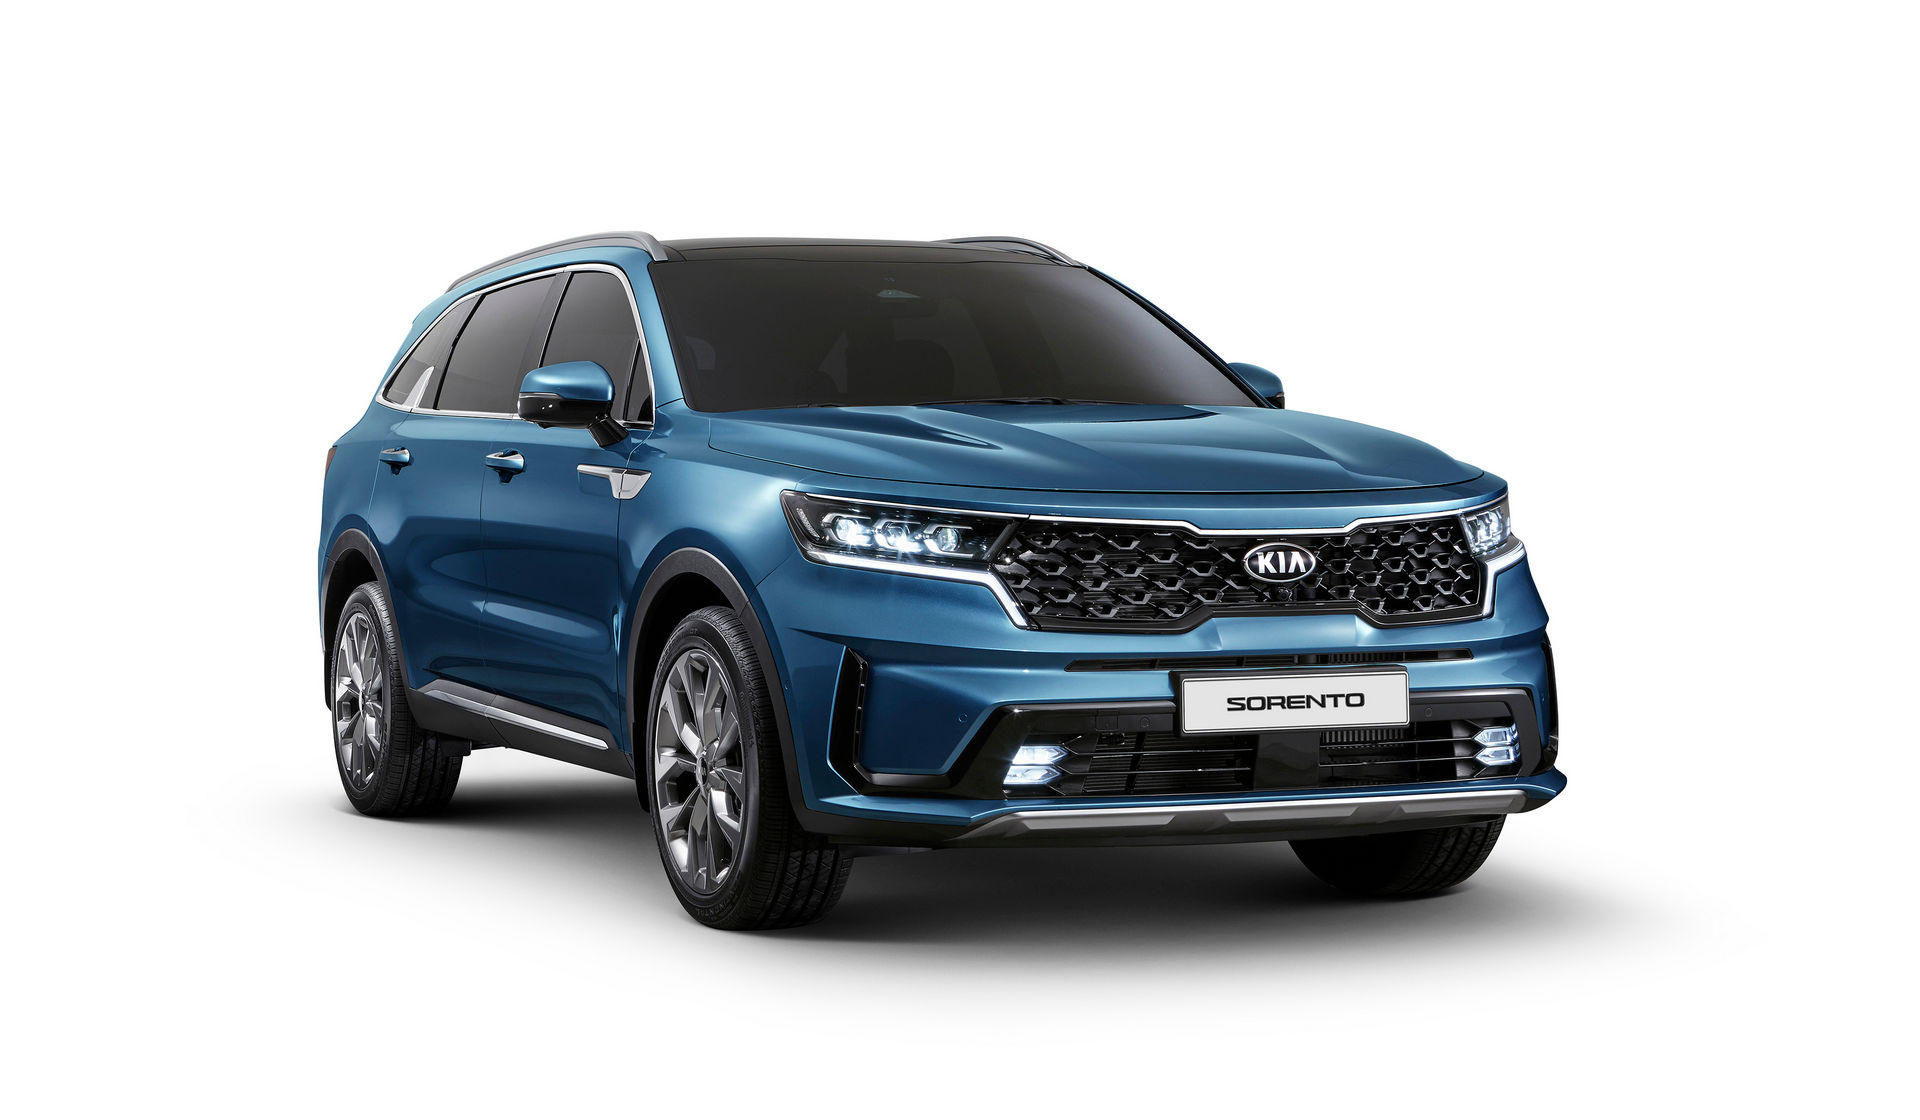 2021 Kia Sorento: Here Are The First Official Images And Details - 2022 Kia Niro Phev Release Date, Redesign, Rumor